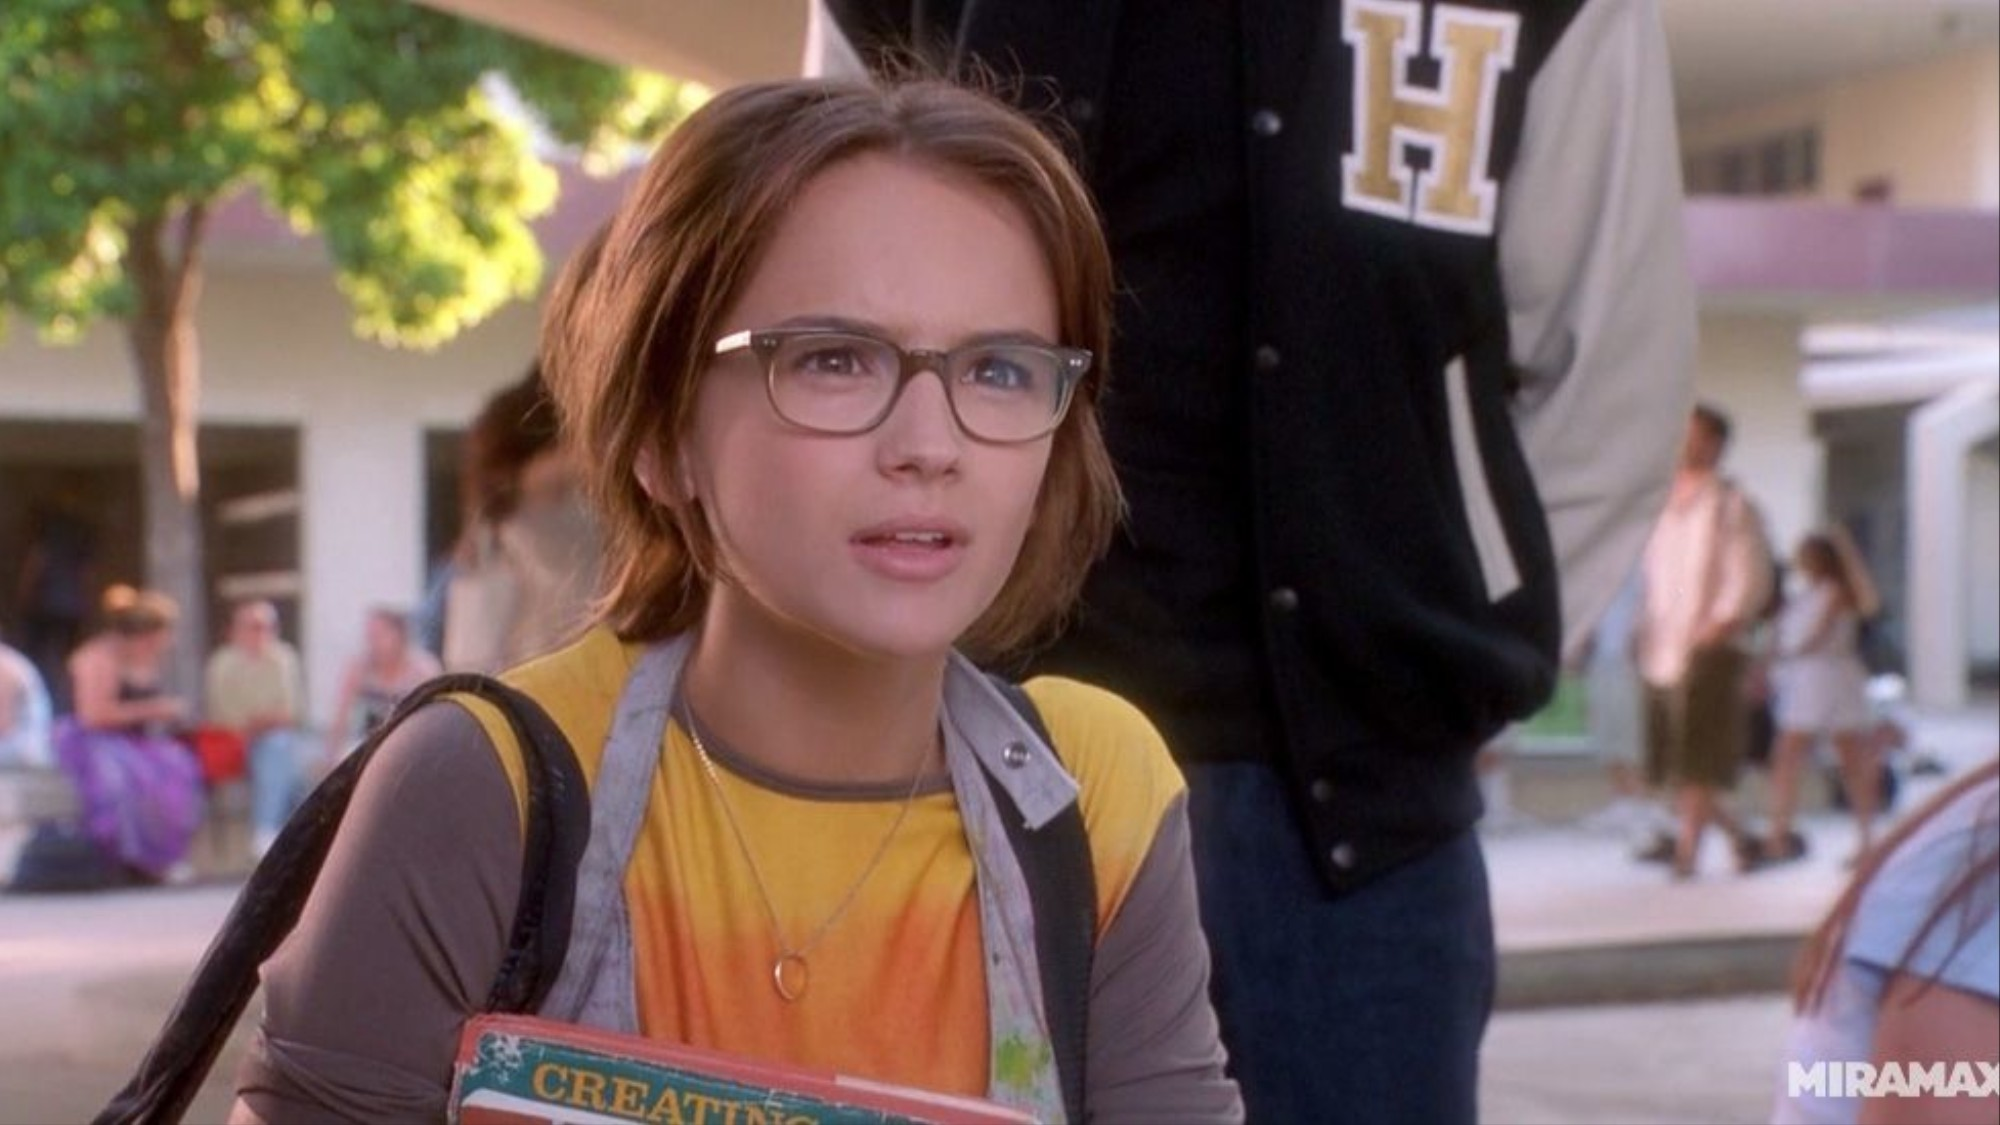 10 iconic makeovers from 10 iconic teen movies - i-D